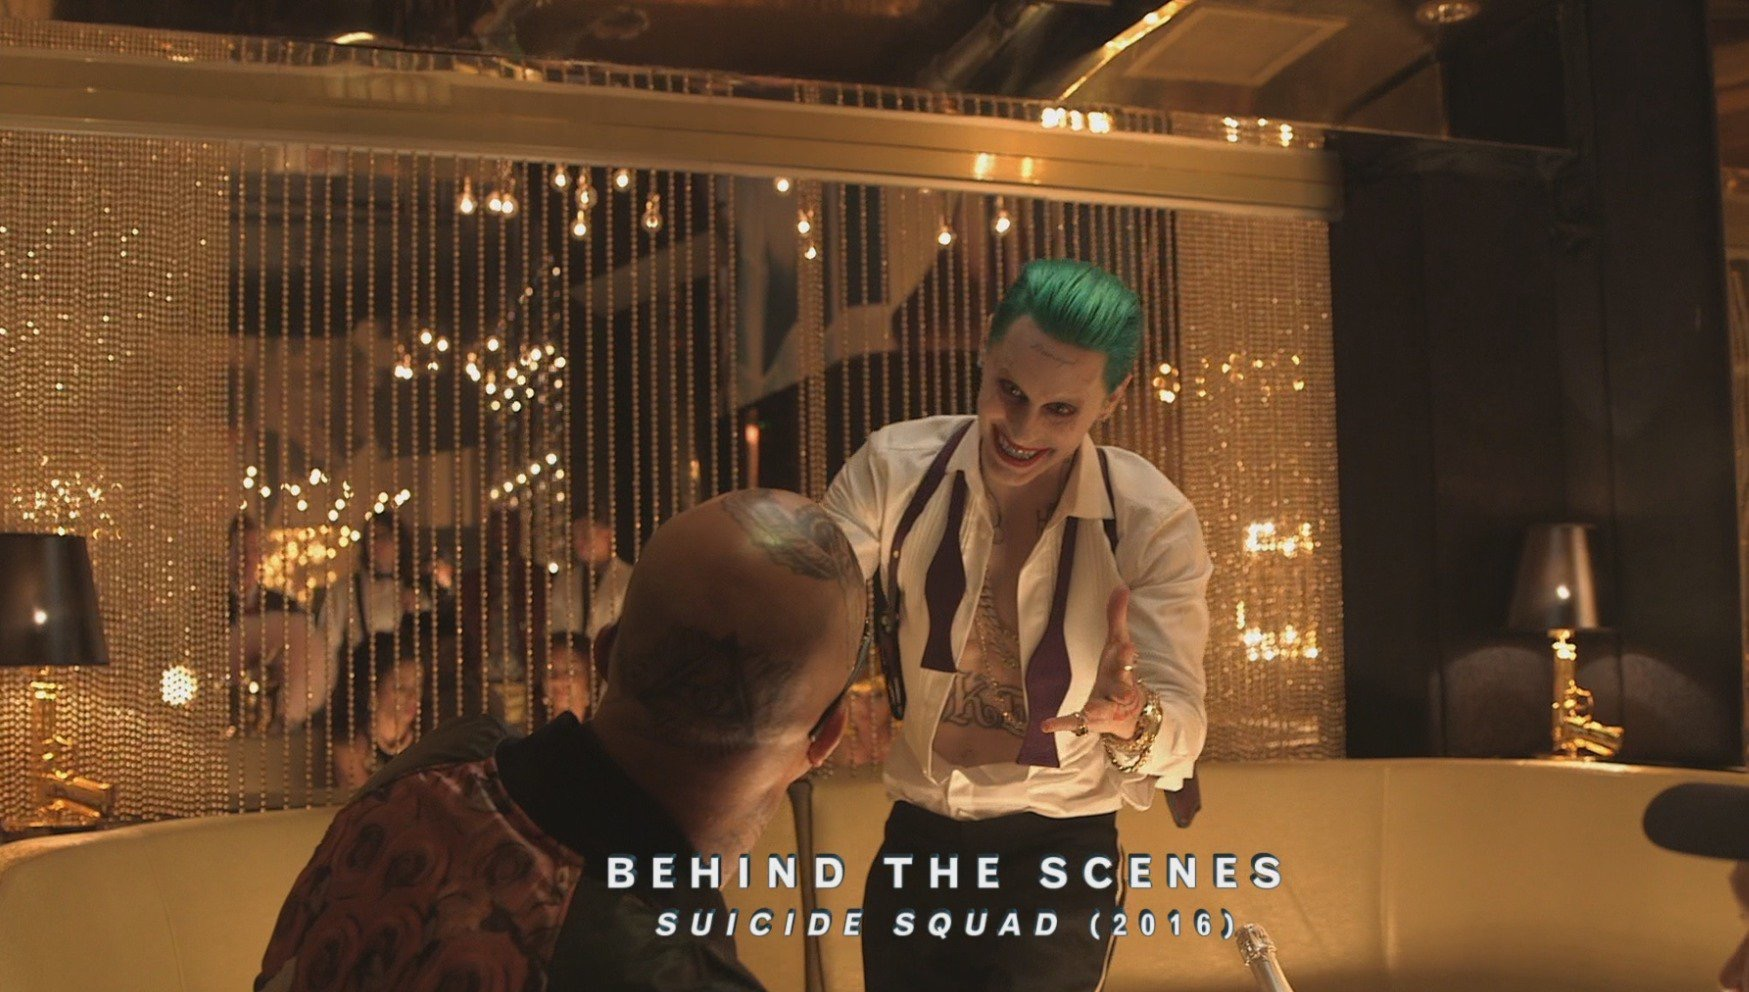 Another BTS still featuring Jared Leto's character!